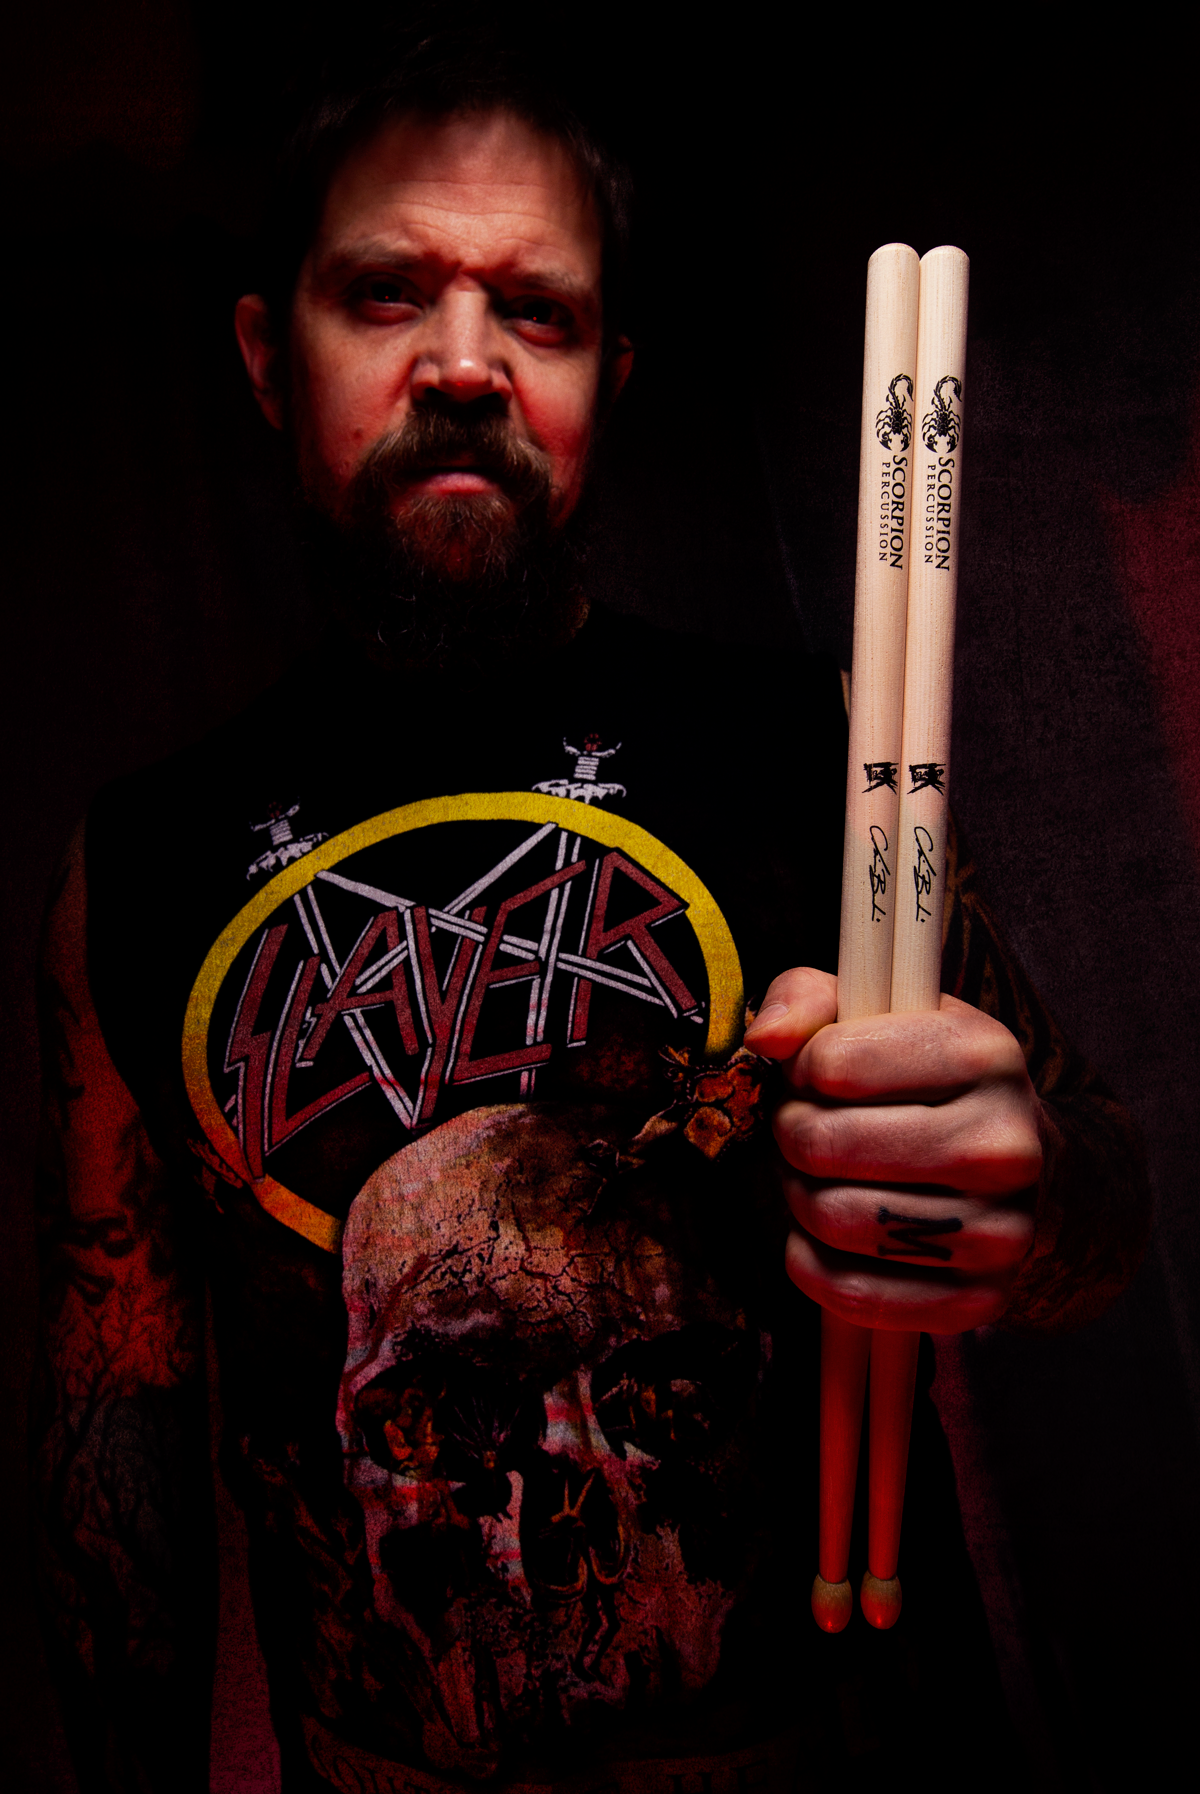 Drummer Chris Barkensjö plays live on stag with his Immortal Series sticks